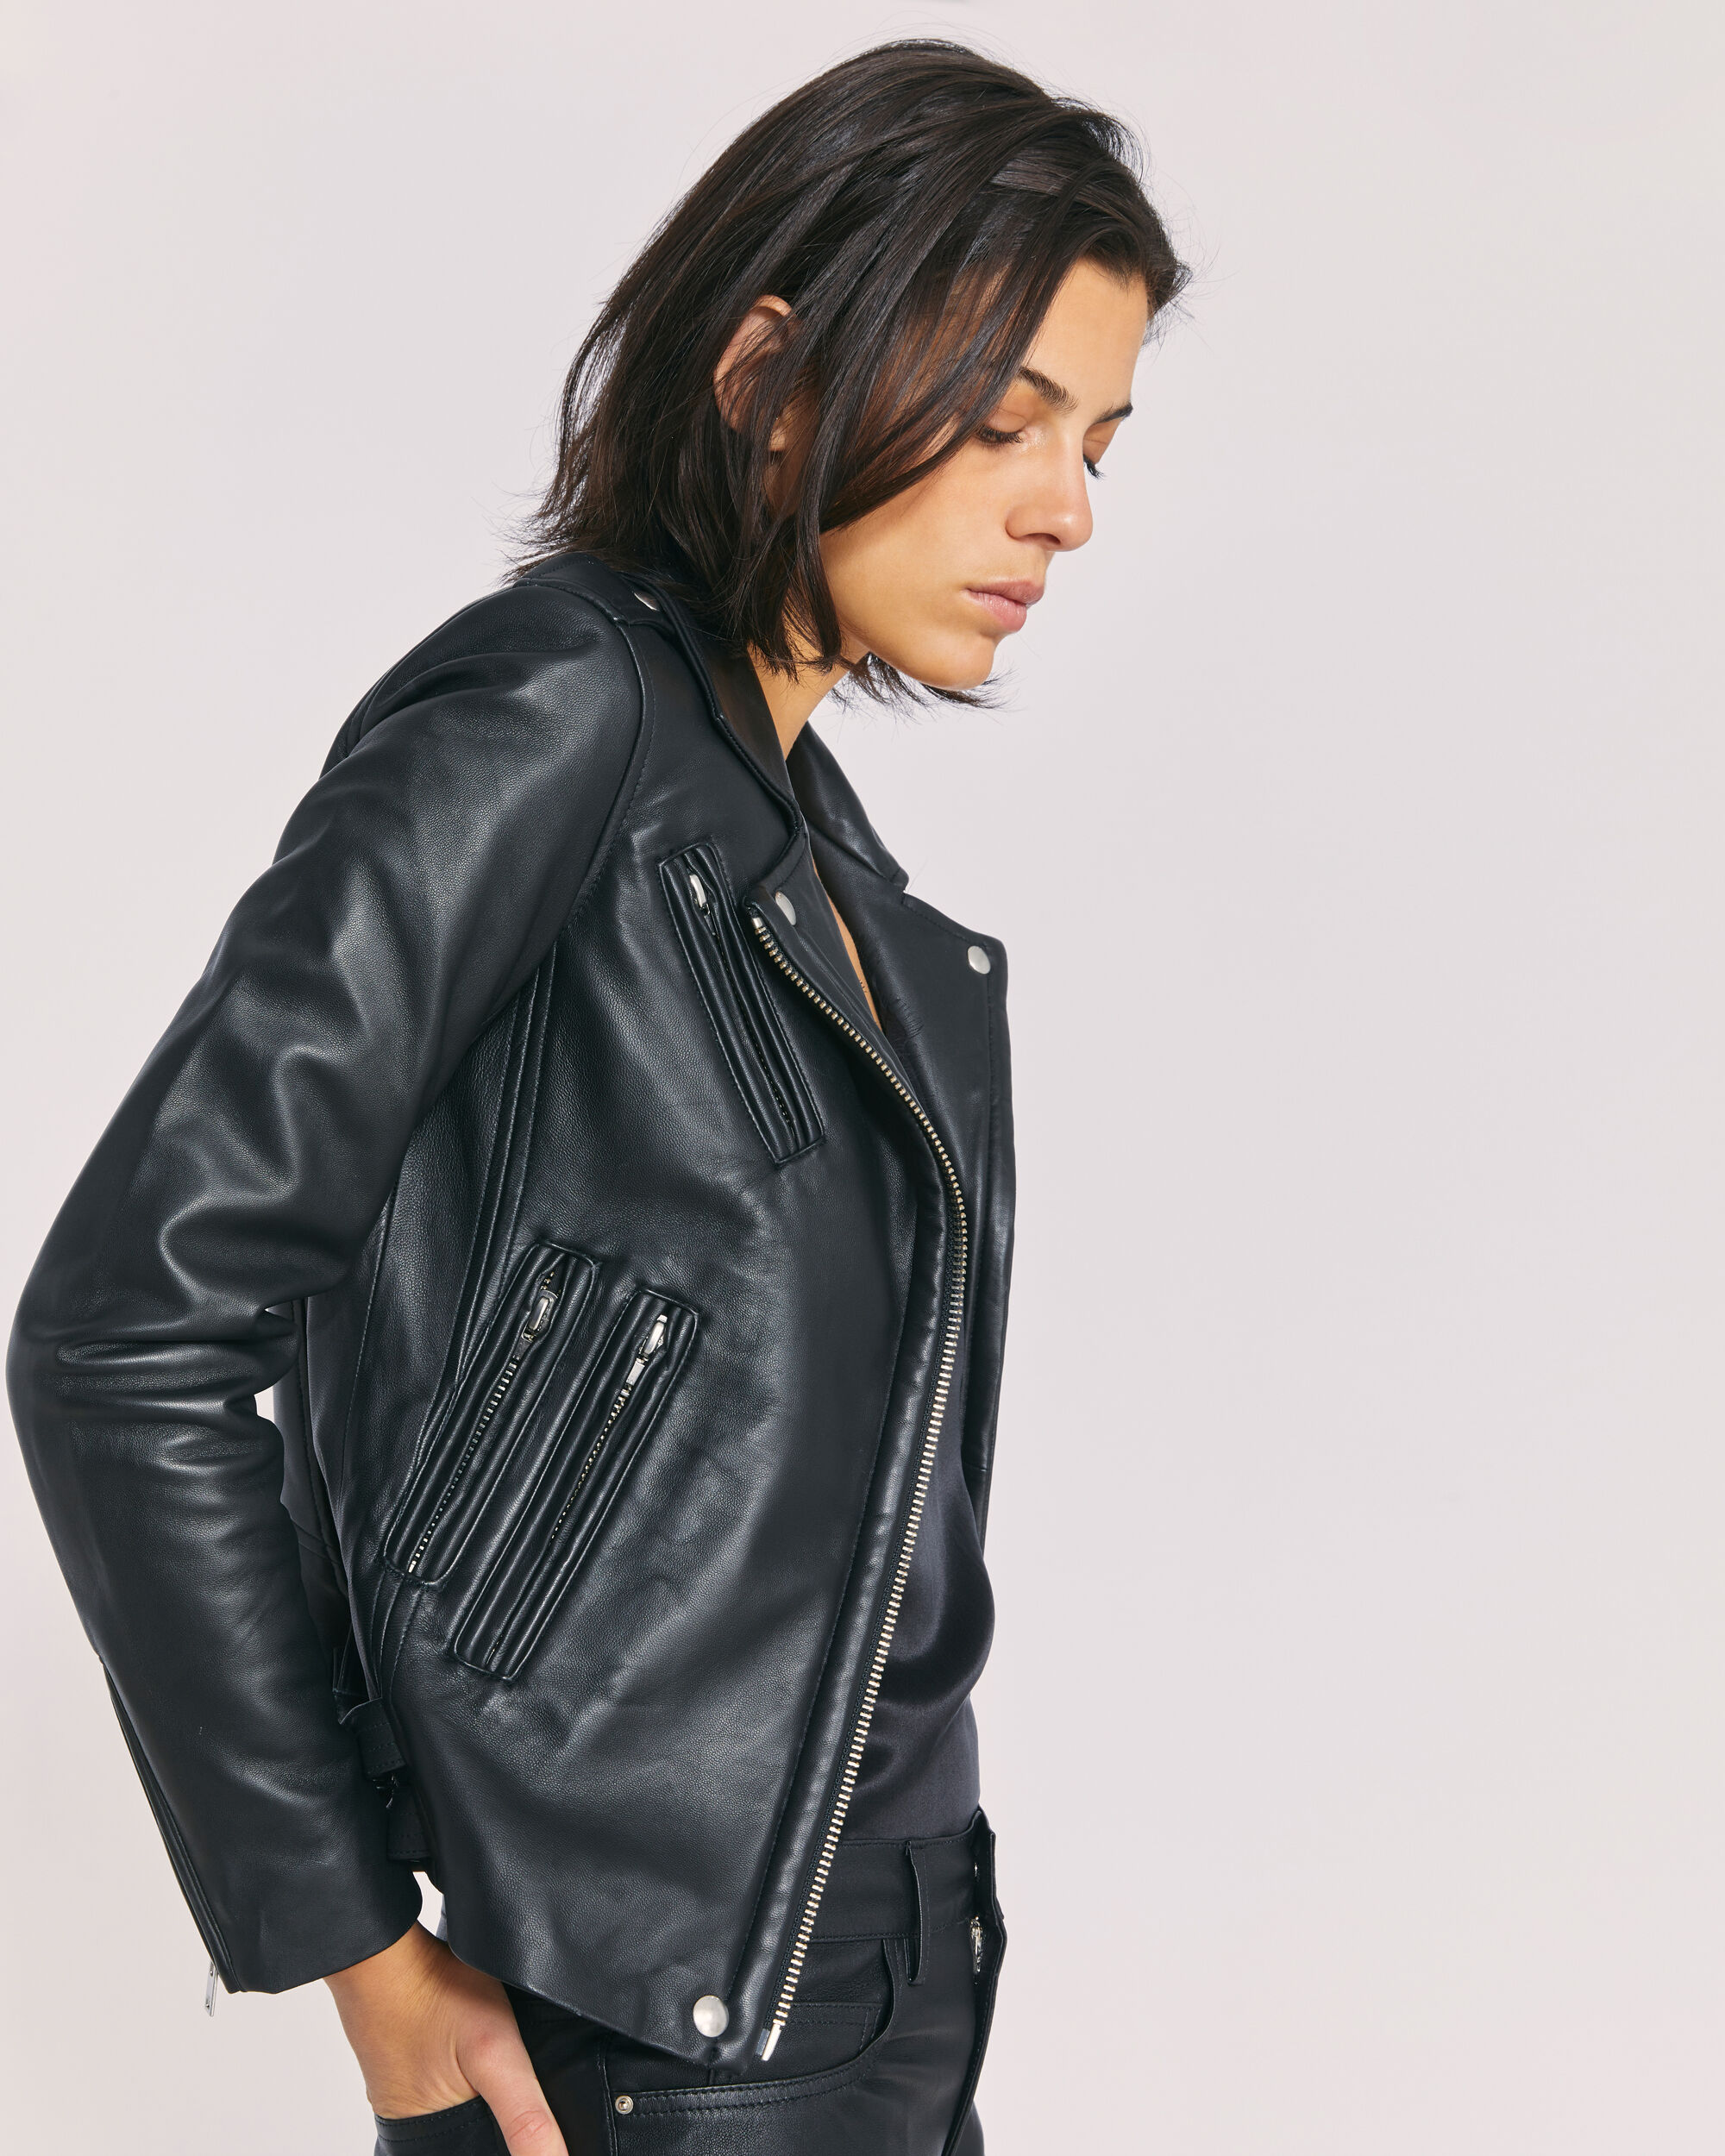 IRO HAN LEATHER JACKET,BLACK/SILVER